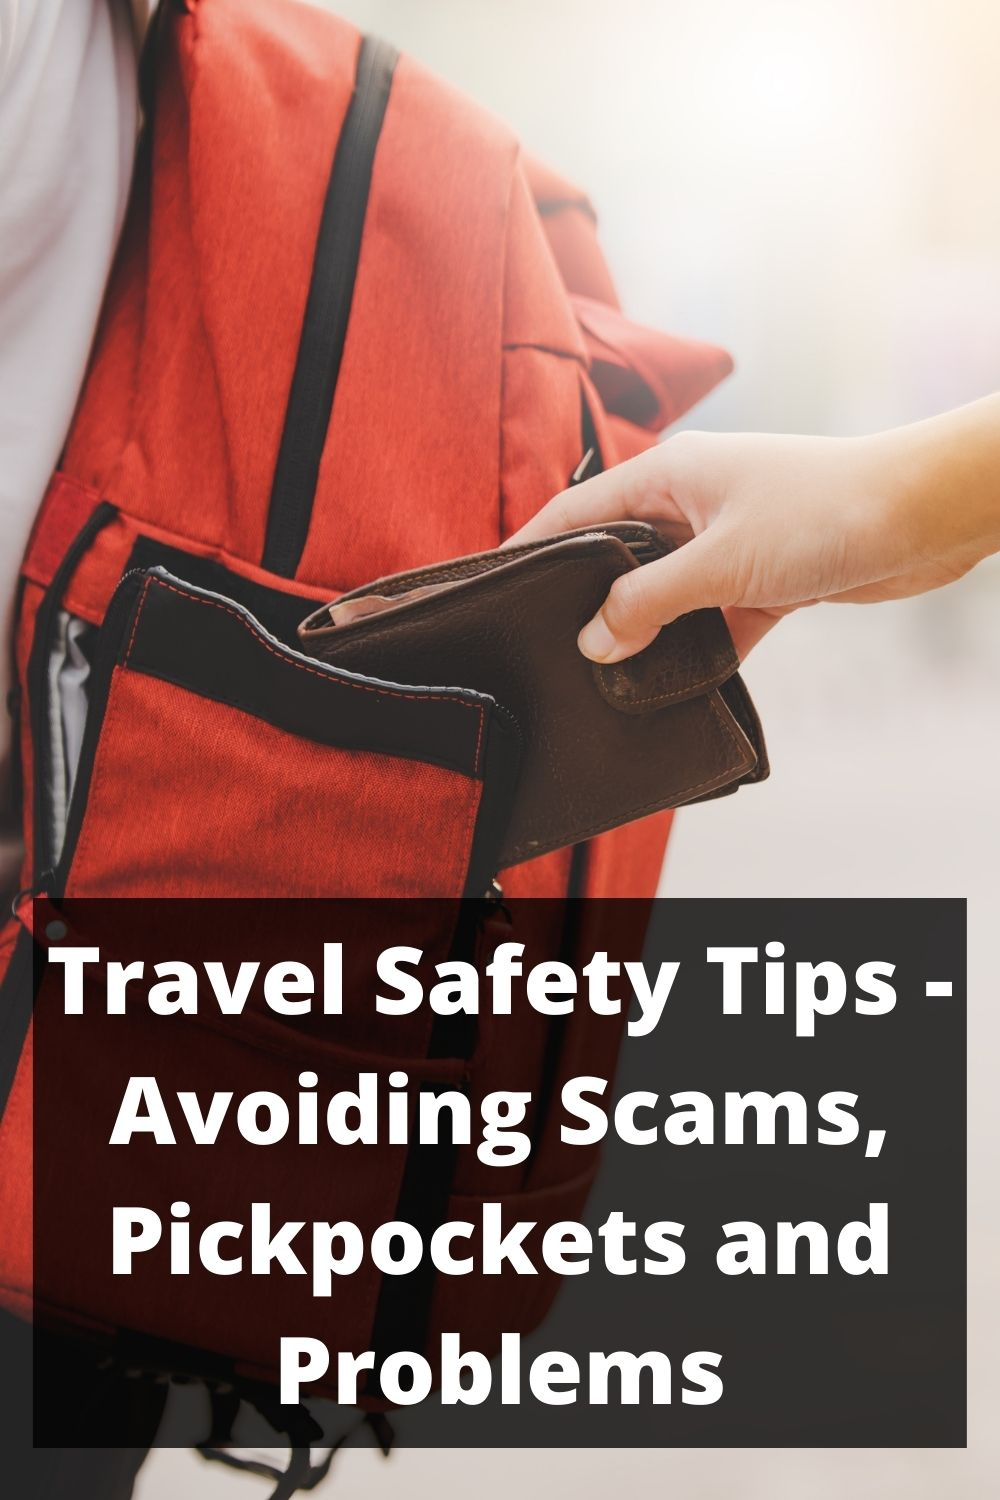 Travel Safety Tips - Avoiding Scams, Pickpockets and Problems